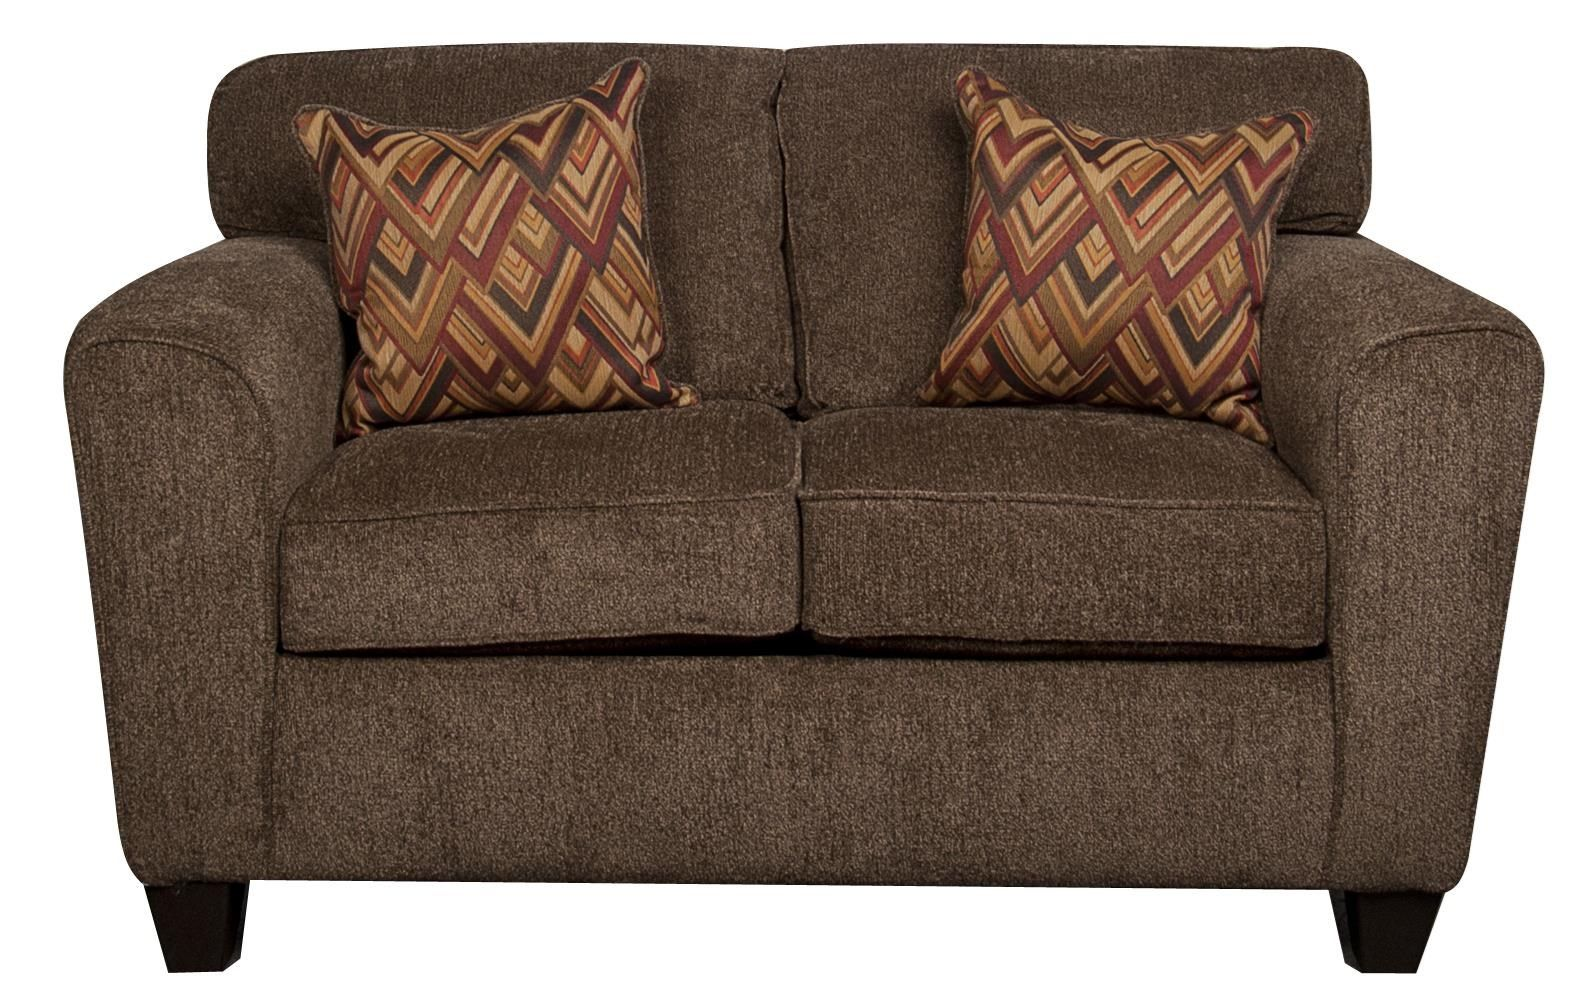 Wilson Contemporary Loveseat With Accent Pillows By Peak Living At Morris Home Love Seat Contemporary Loveseat Morris Homes